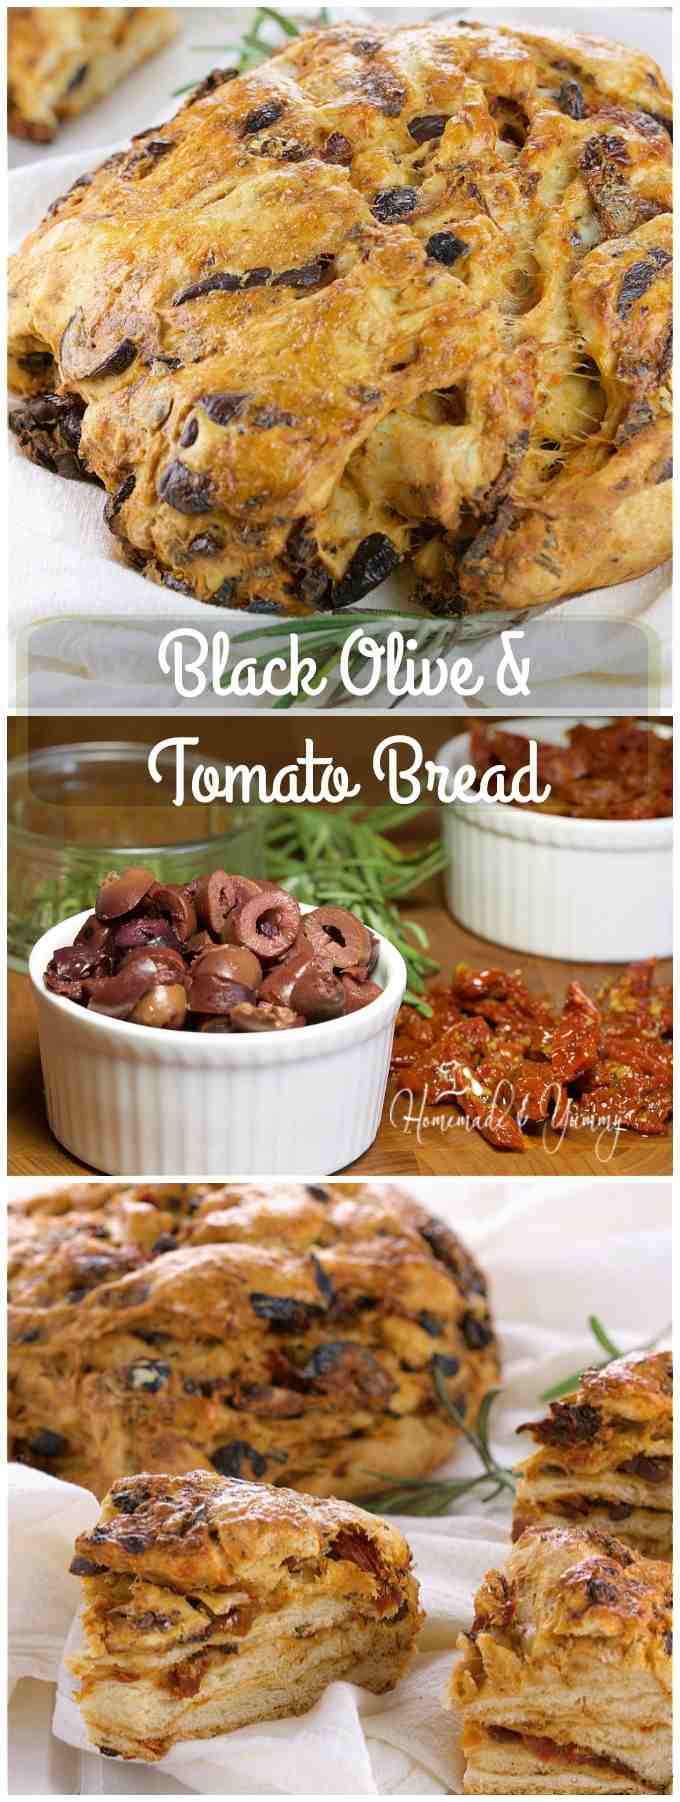 Black Olive & Tomato Bread long pin image.